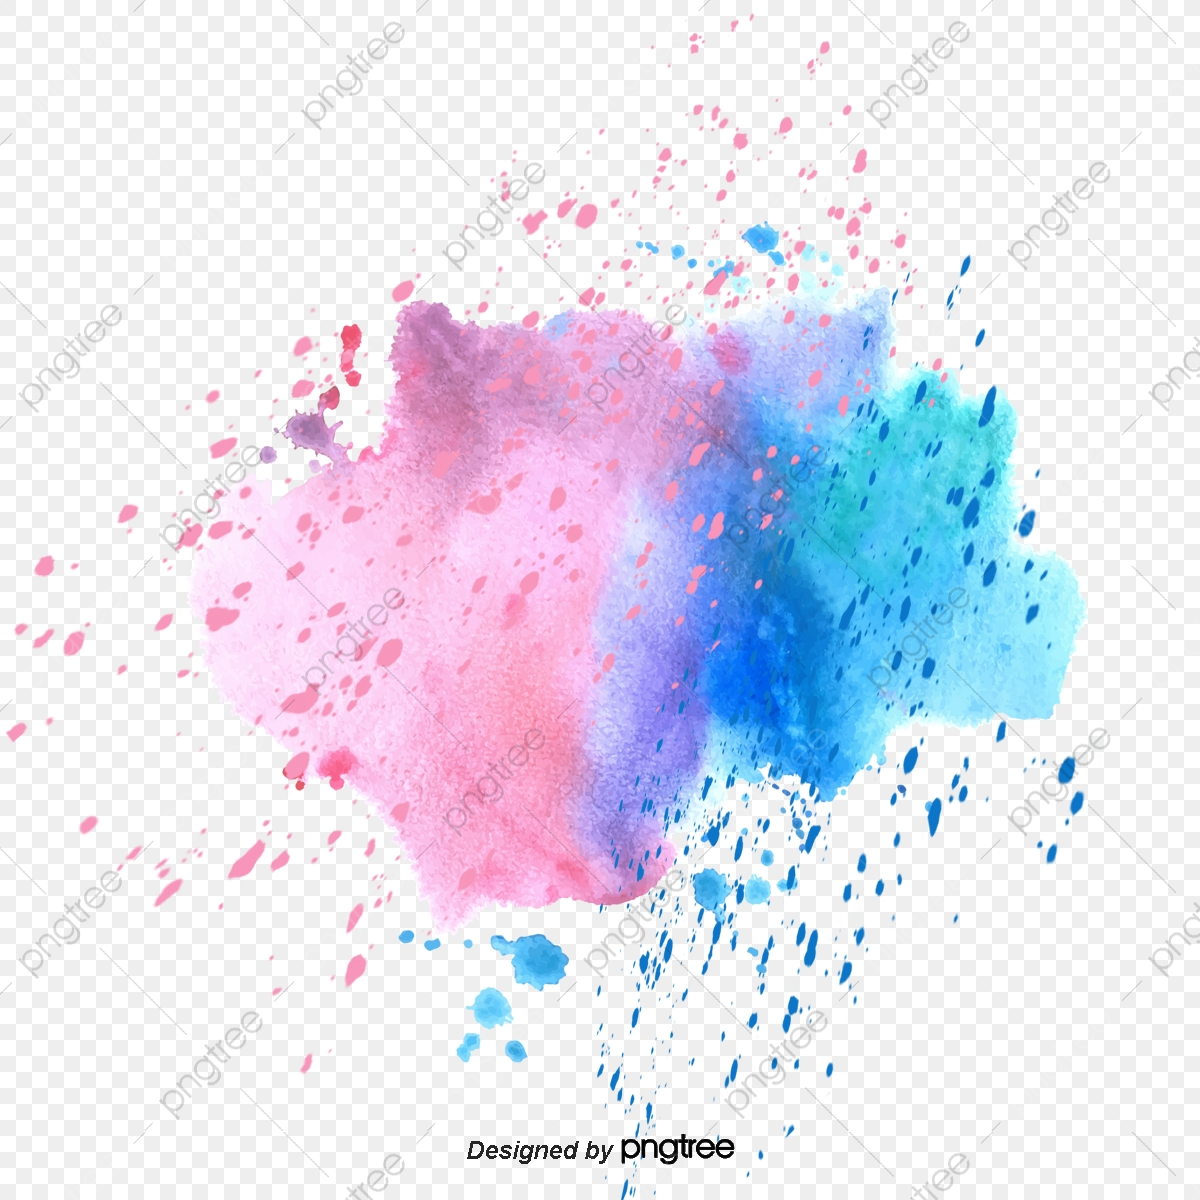 Watercolor Splash PNG Images   Vector and PSD Files   Free ...